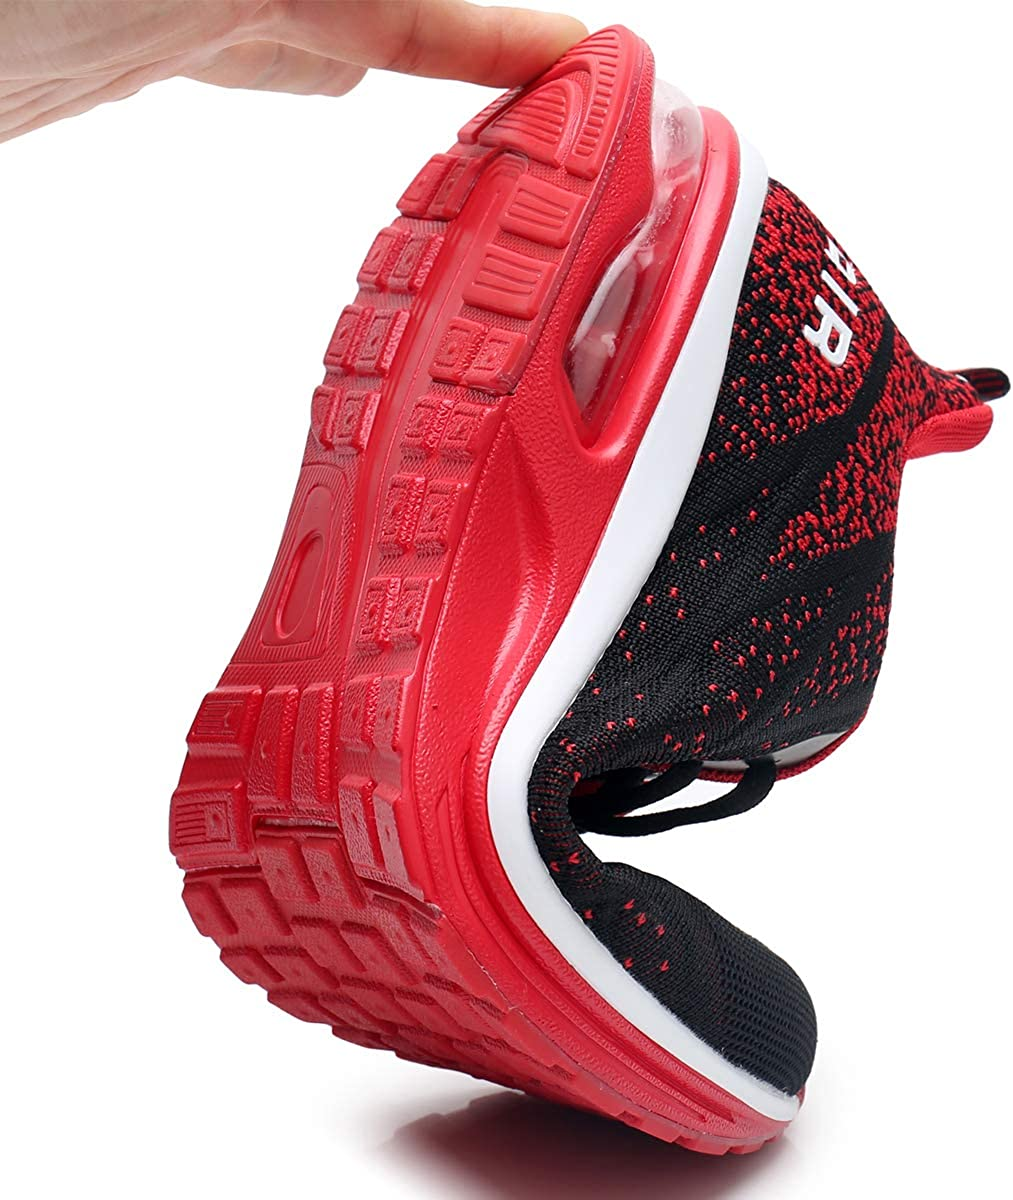 US7-12.5 D M GANNOU Mens Air Athletic Running Shoes Fashion Sport Gym Jogging Tennis Fitness Sneaker/